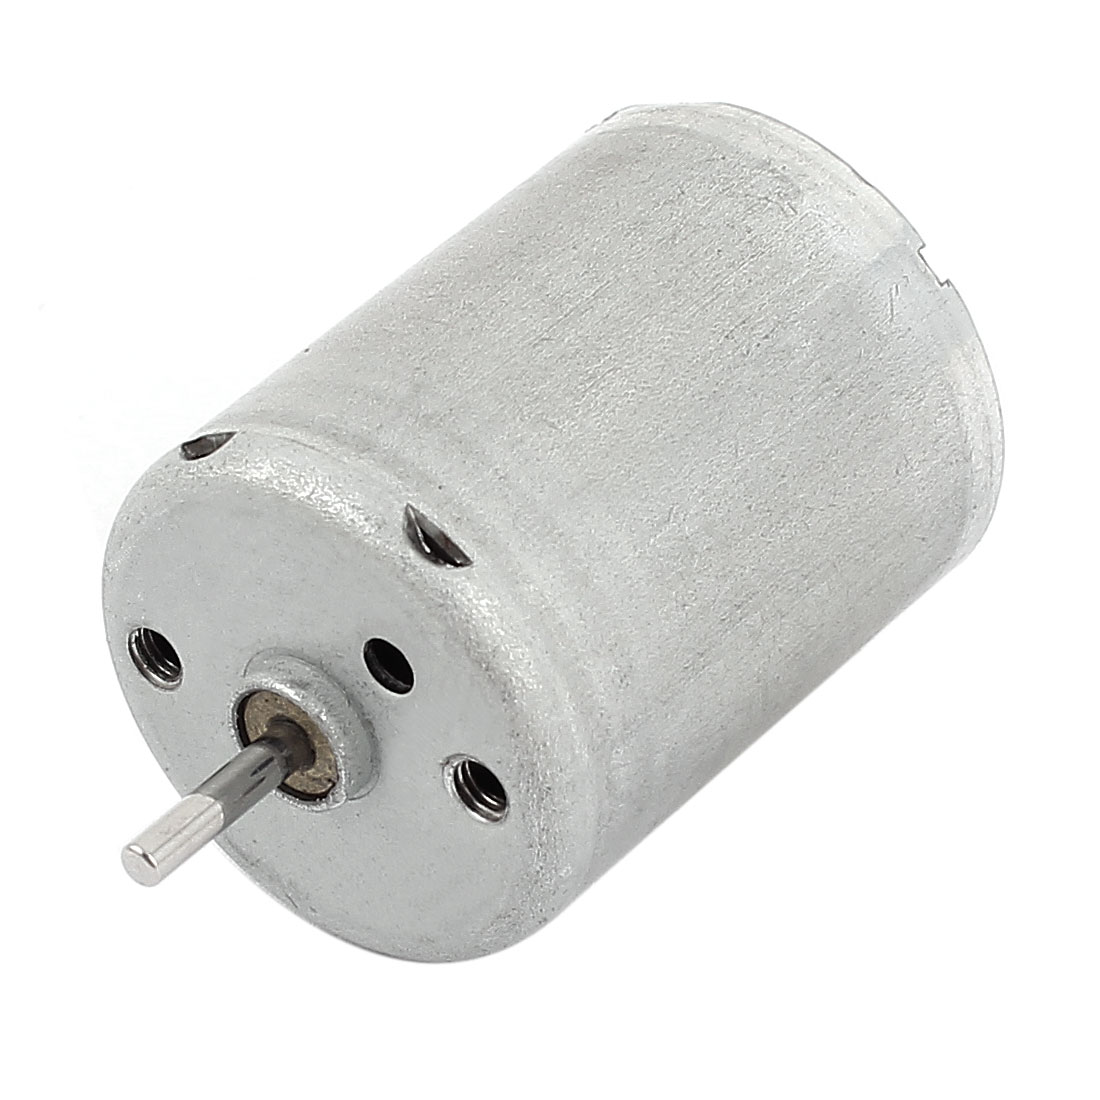 DC 6V 22000RPM High Speed 2mm Shaft Dia Cylinder Shaped Micro Electric Motor